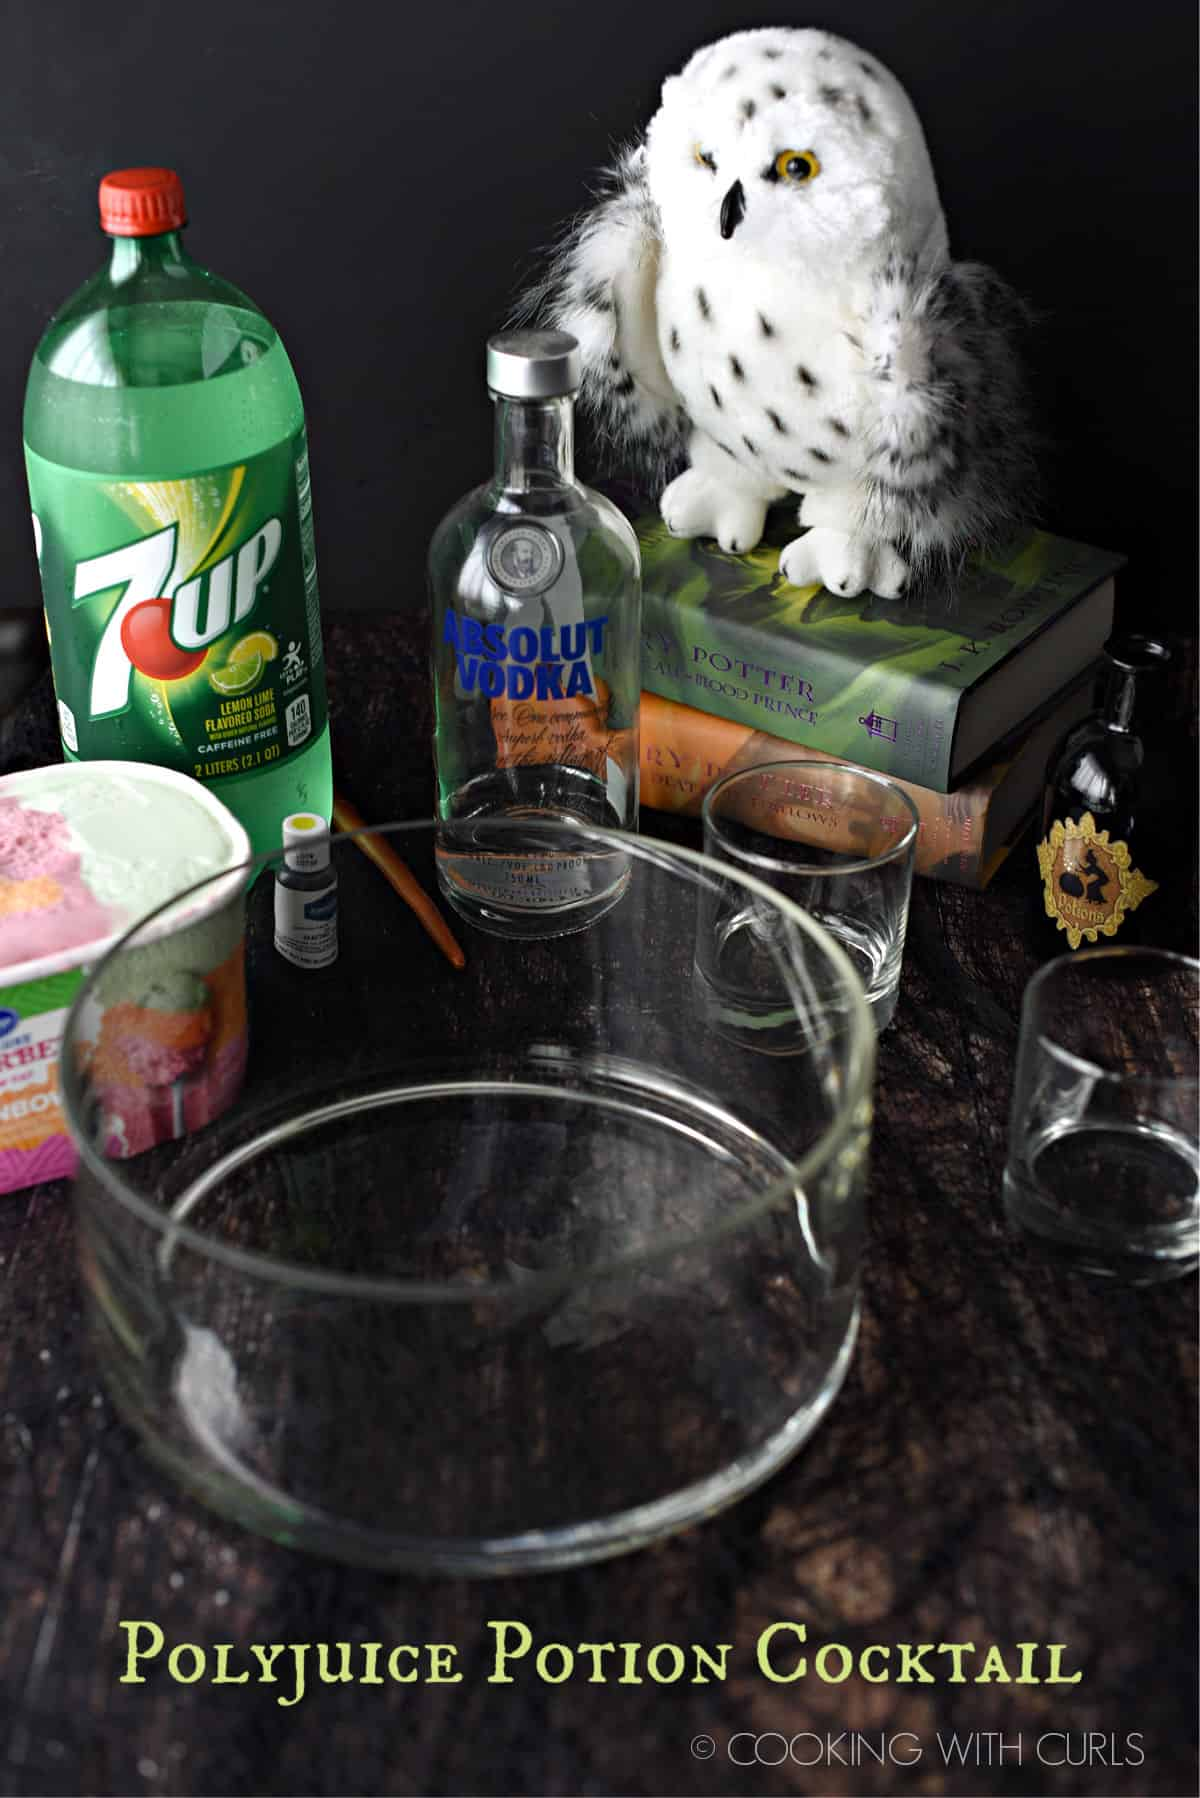 polyjuice potion ingredients; glass punch bowl, rainbow sherbet, 7up, Absolut vodka, lime green food coloring and a stack of harry potter books with a stuffed Hedwig owl on top.